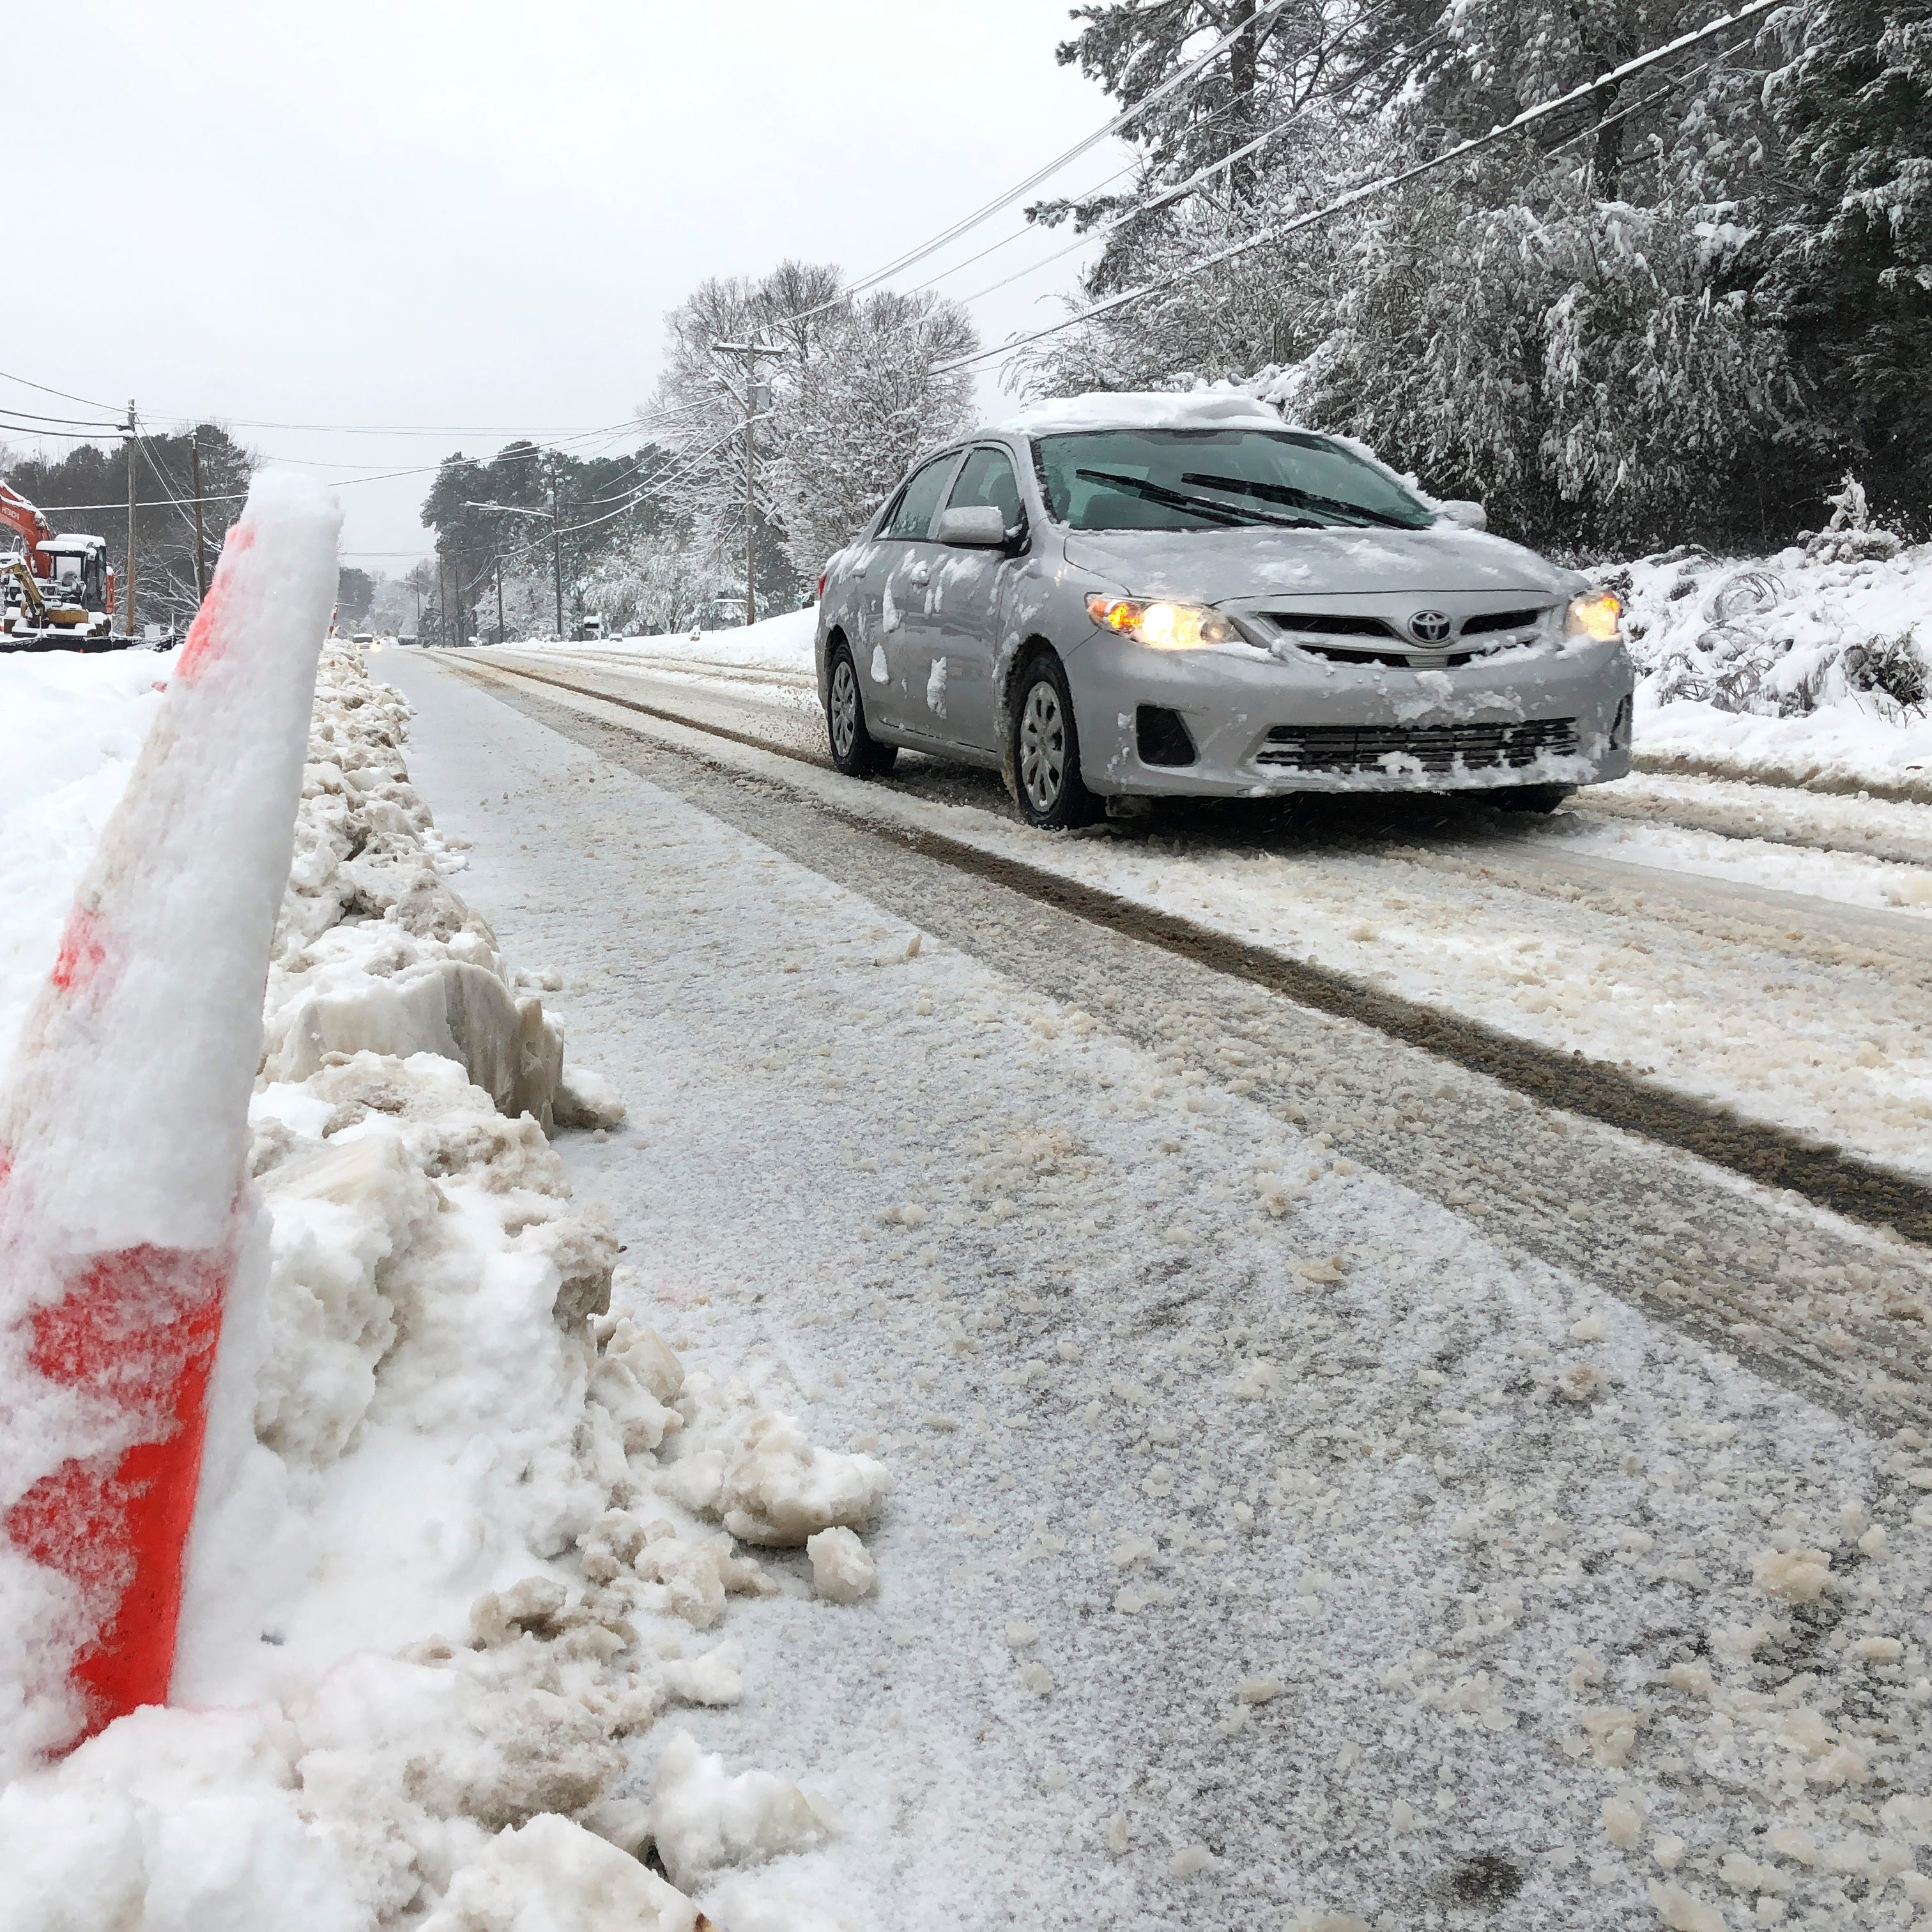 A car drives slowly down Old NC 98 in Wake Forest, N.C., on Sunday, Dec. 9, 2018. A storm spreading snow, sleet and freezing rain across a wide swath of the South has millions of people in its path, raising the threat of immobilizing snowfalls, icy roads and possible power outages.